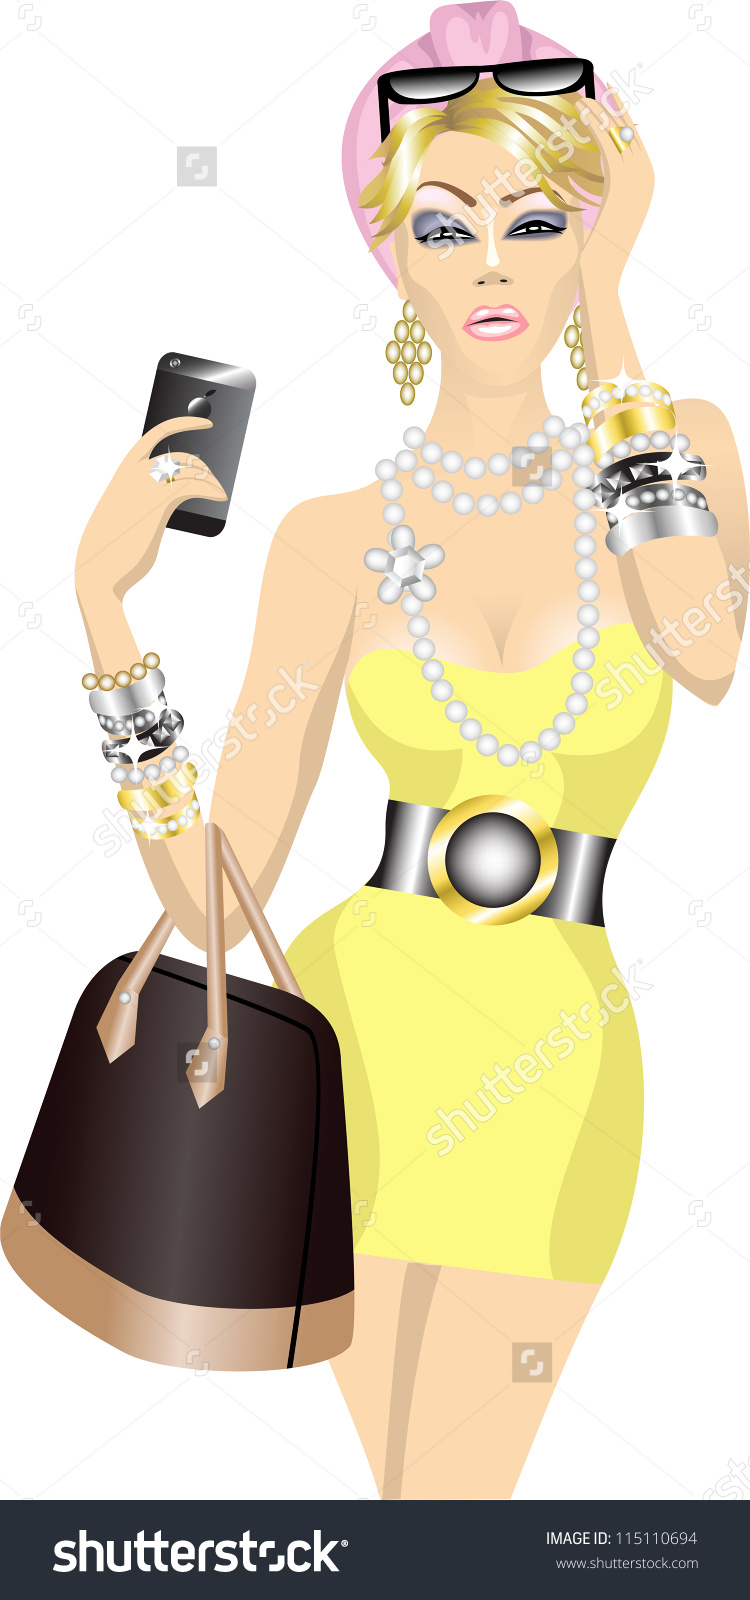 Beautiful pictures for mobile. Cellphone clipart woman